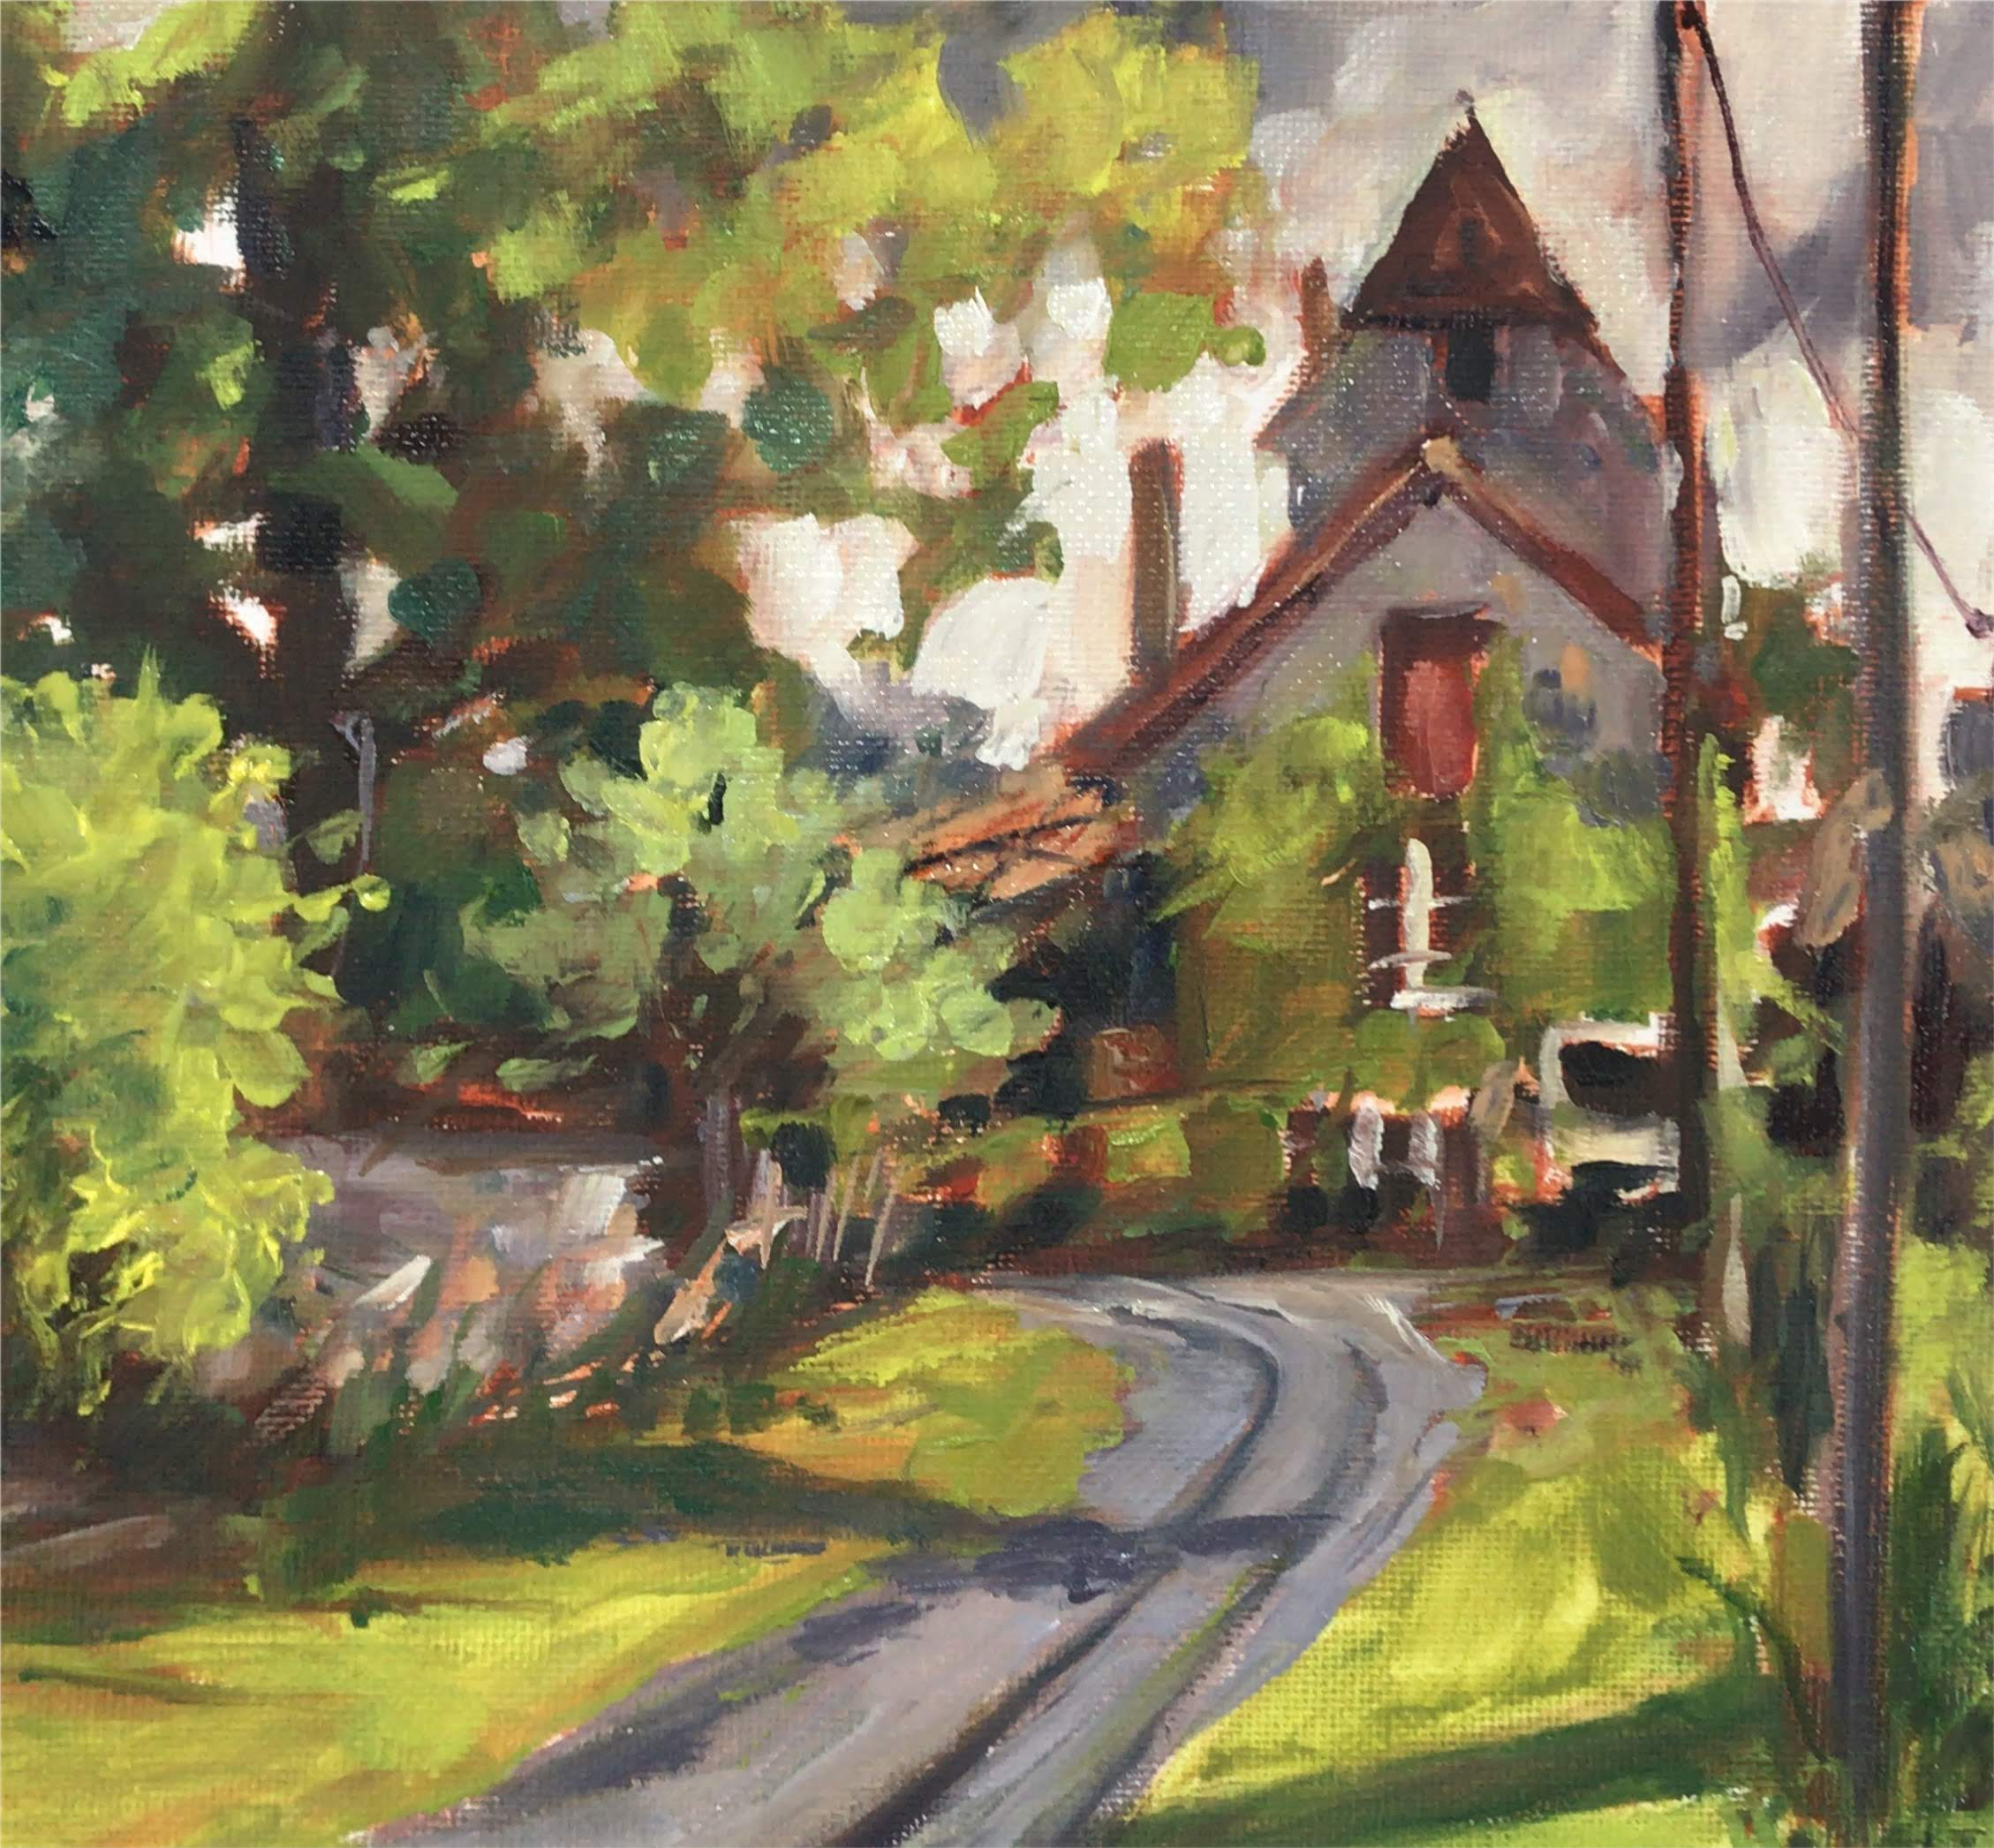 plein air oil painting with anne kullaf 7 sept 16 sept